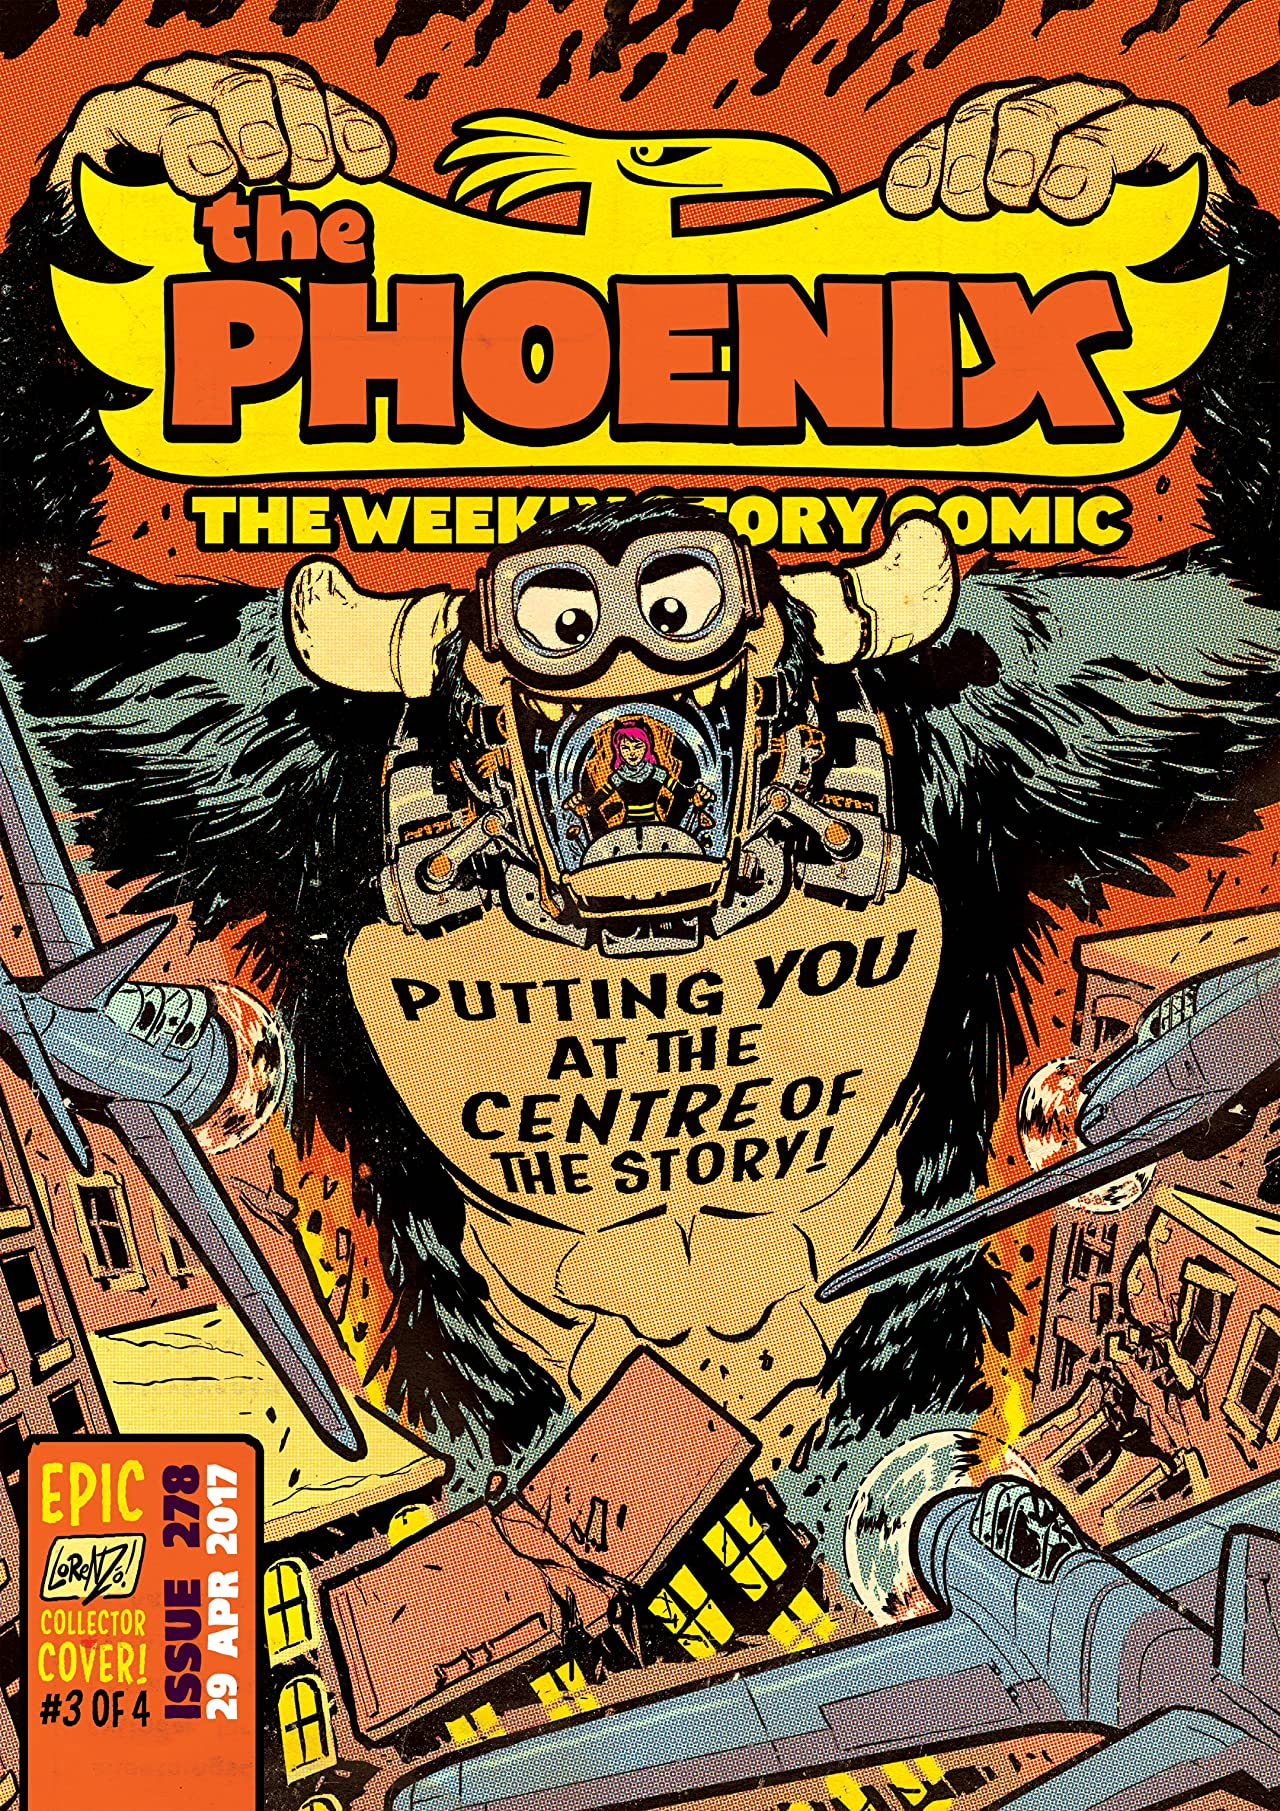 The Phoenix #278: The Weekly Story Comic